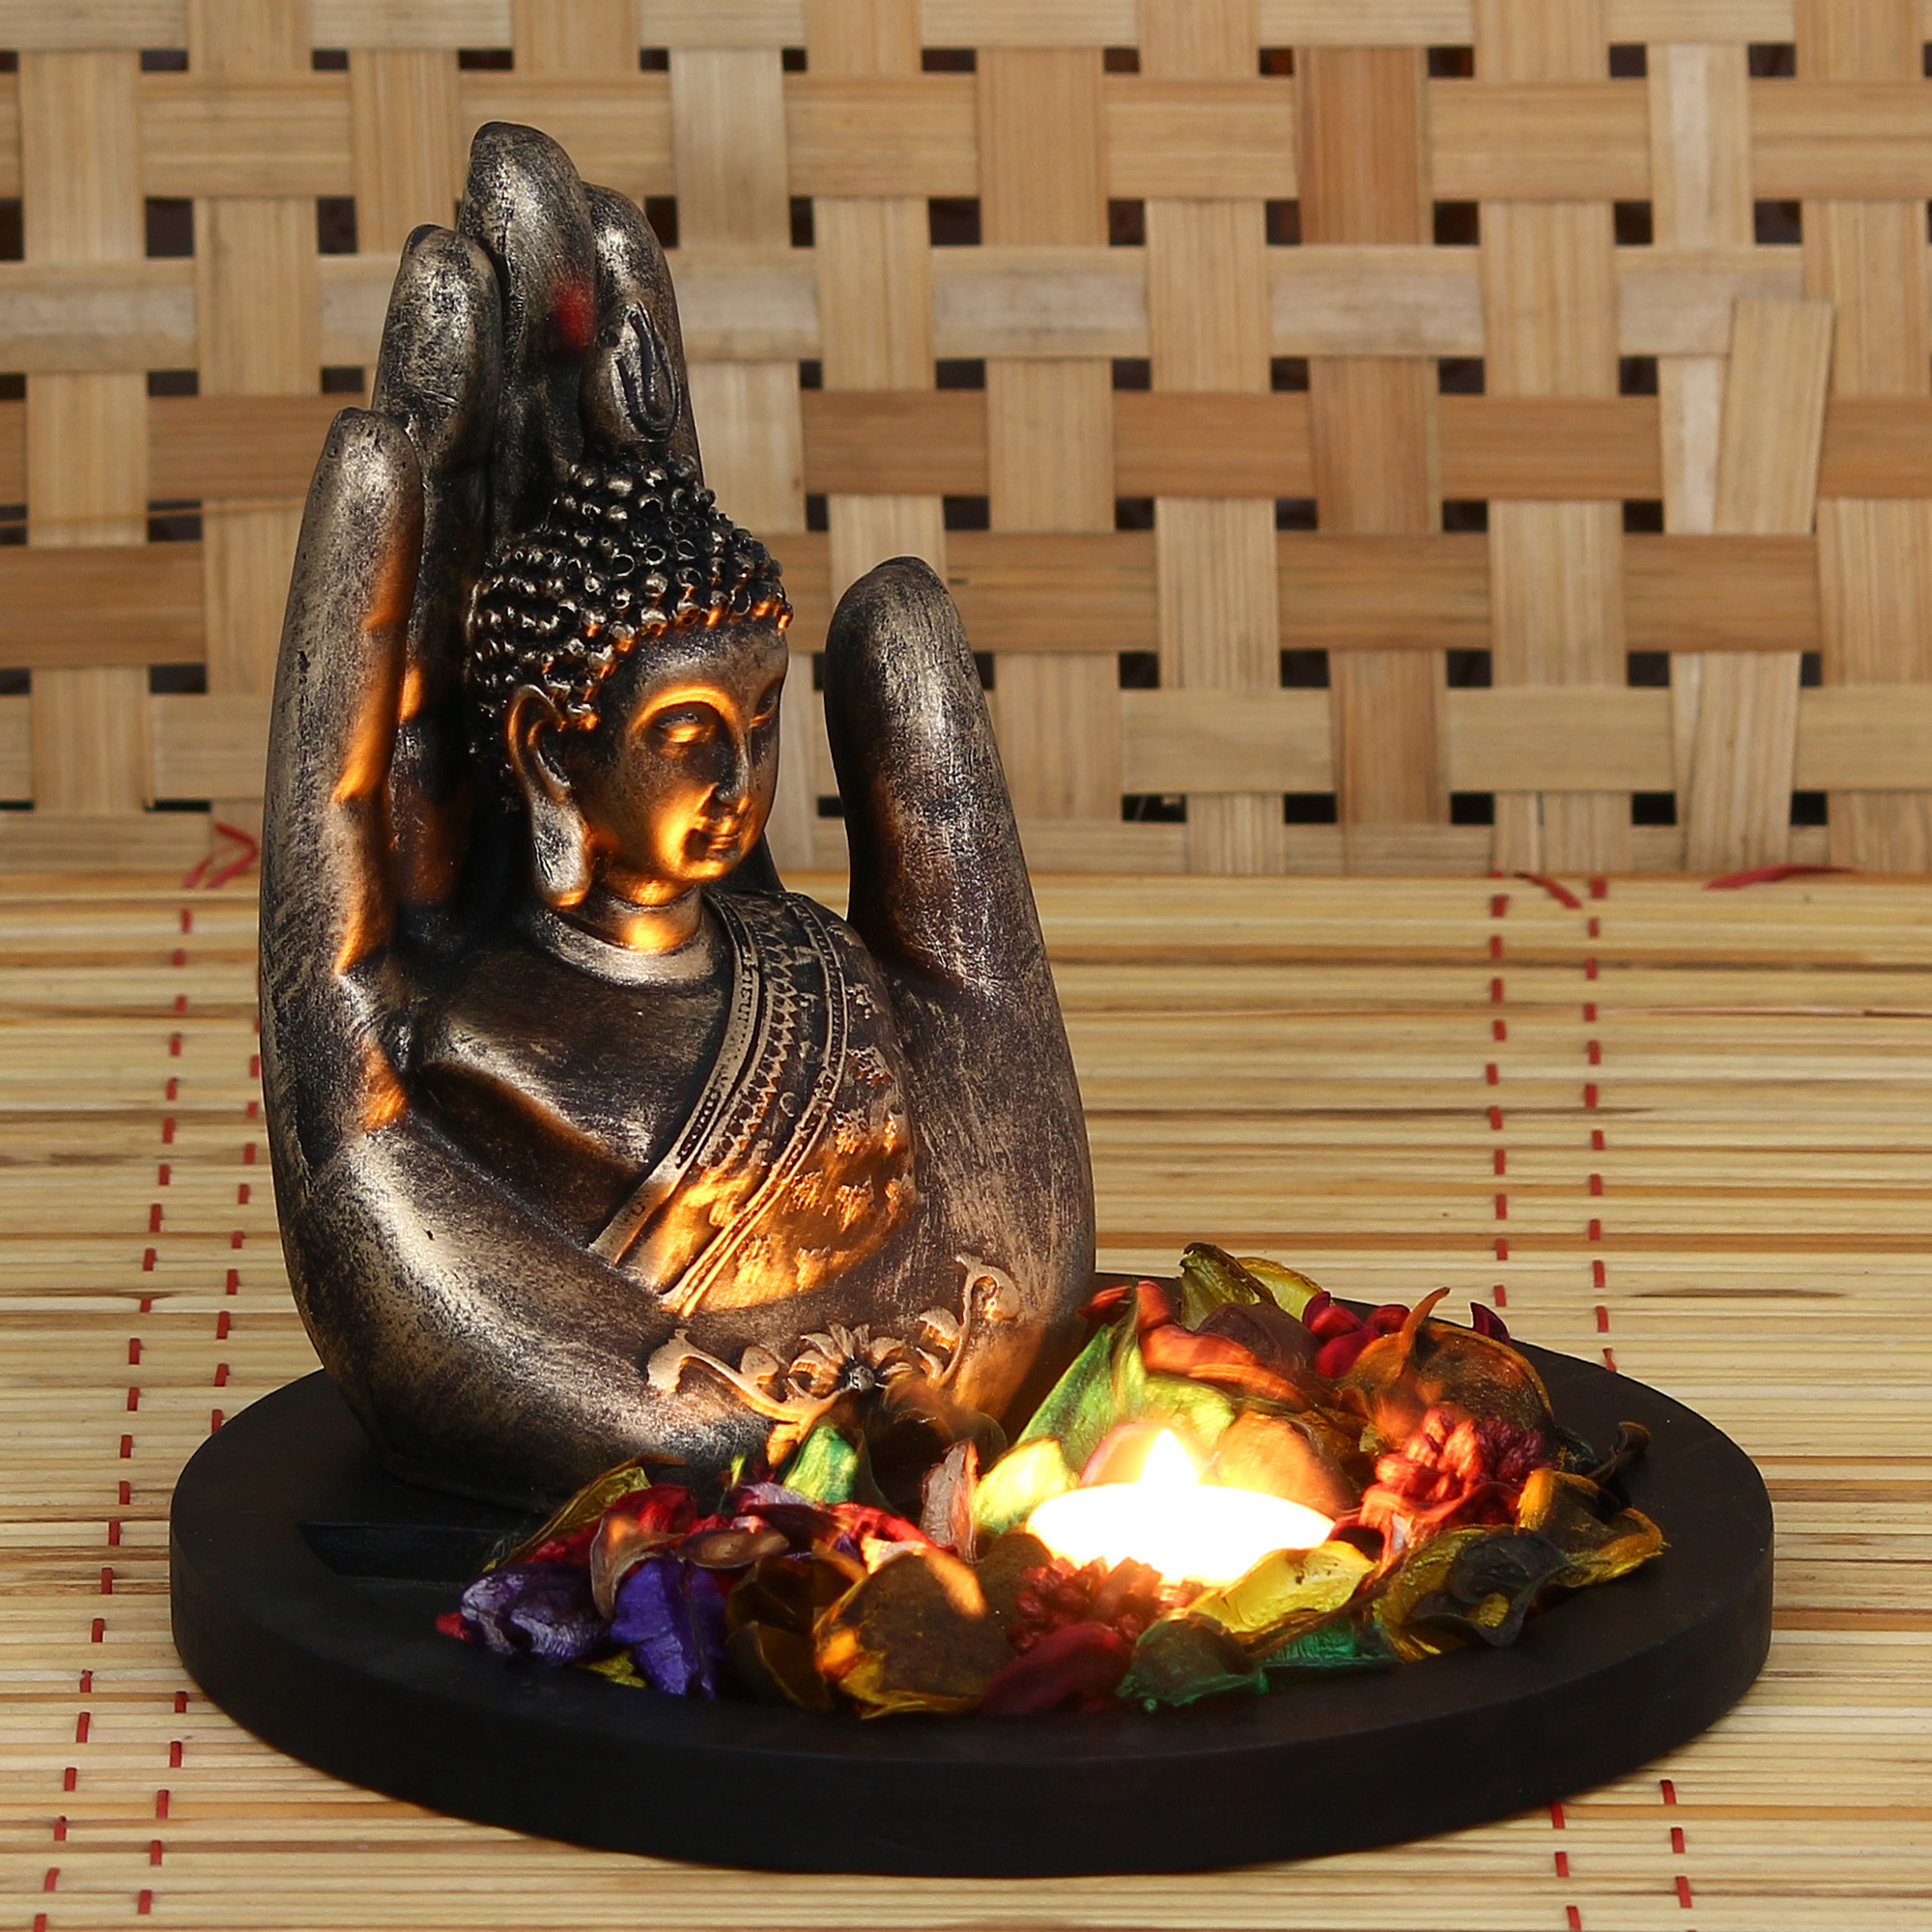 Copper Finish Handcrafted Palm Buddha Decorative Showpiece with Wooden Base, Fragranced Petals and Tealight Indian Home Decor